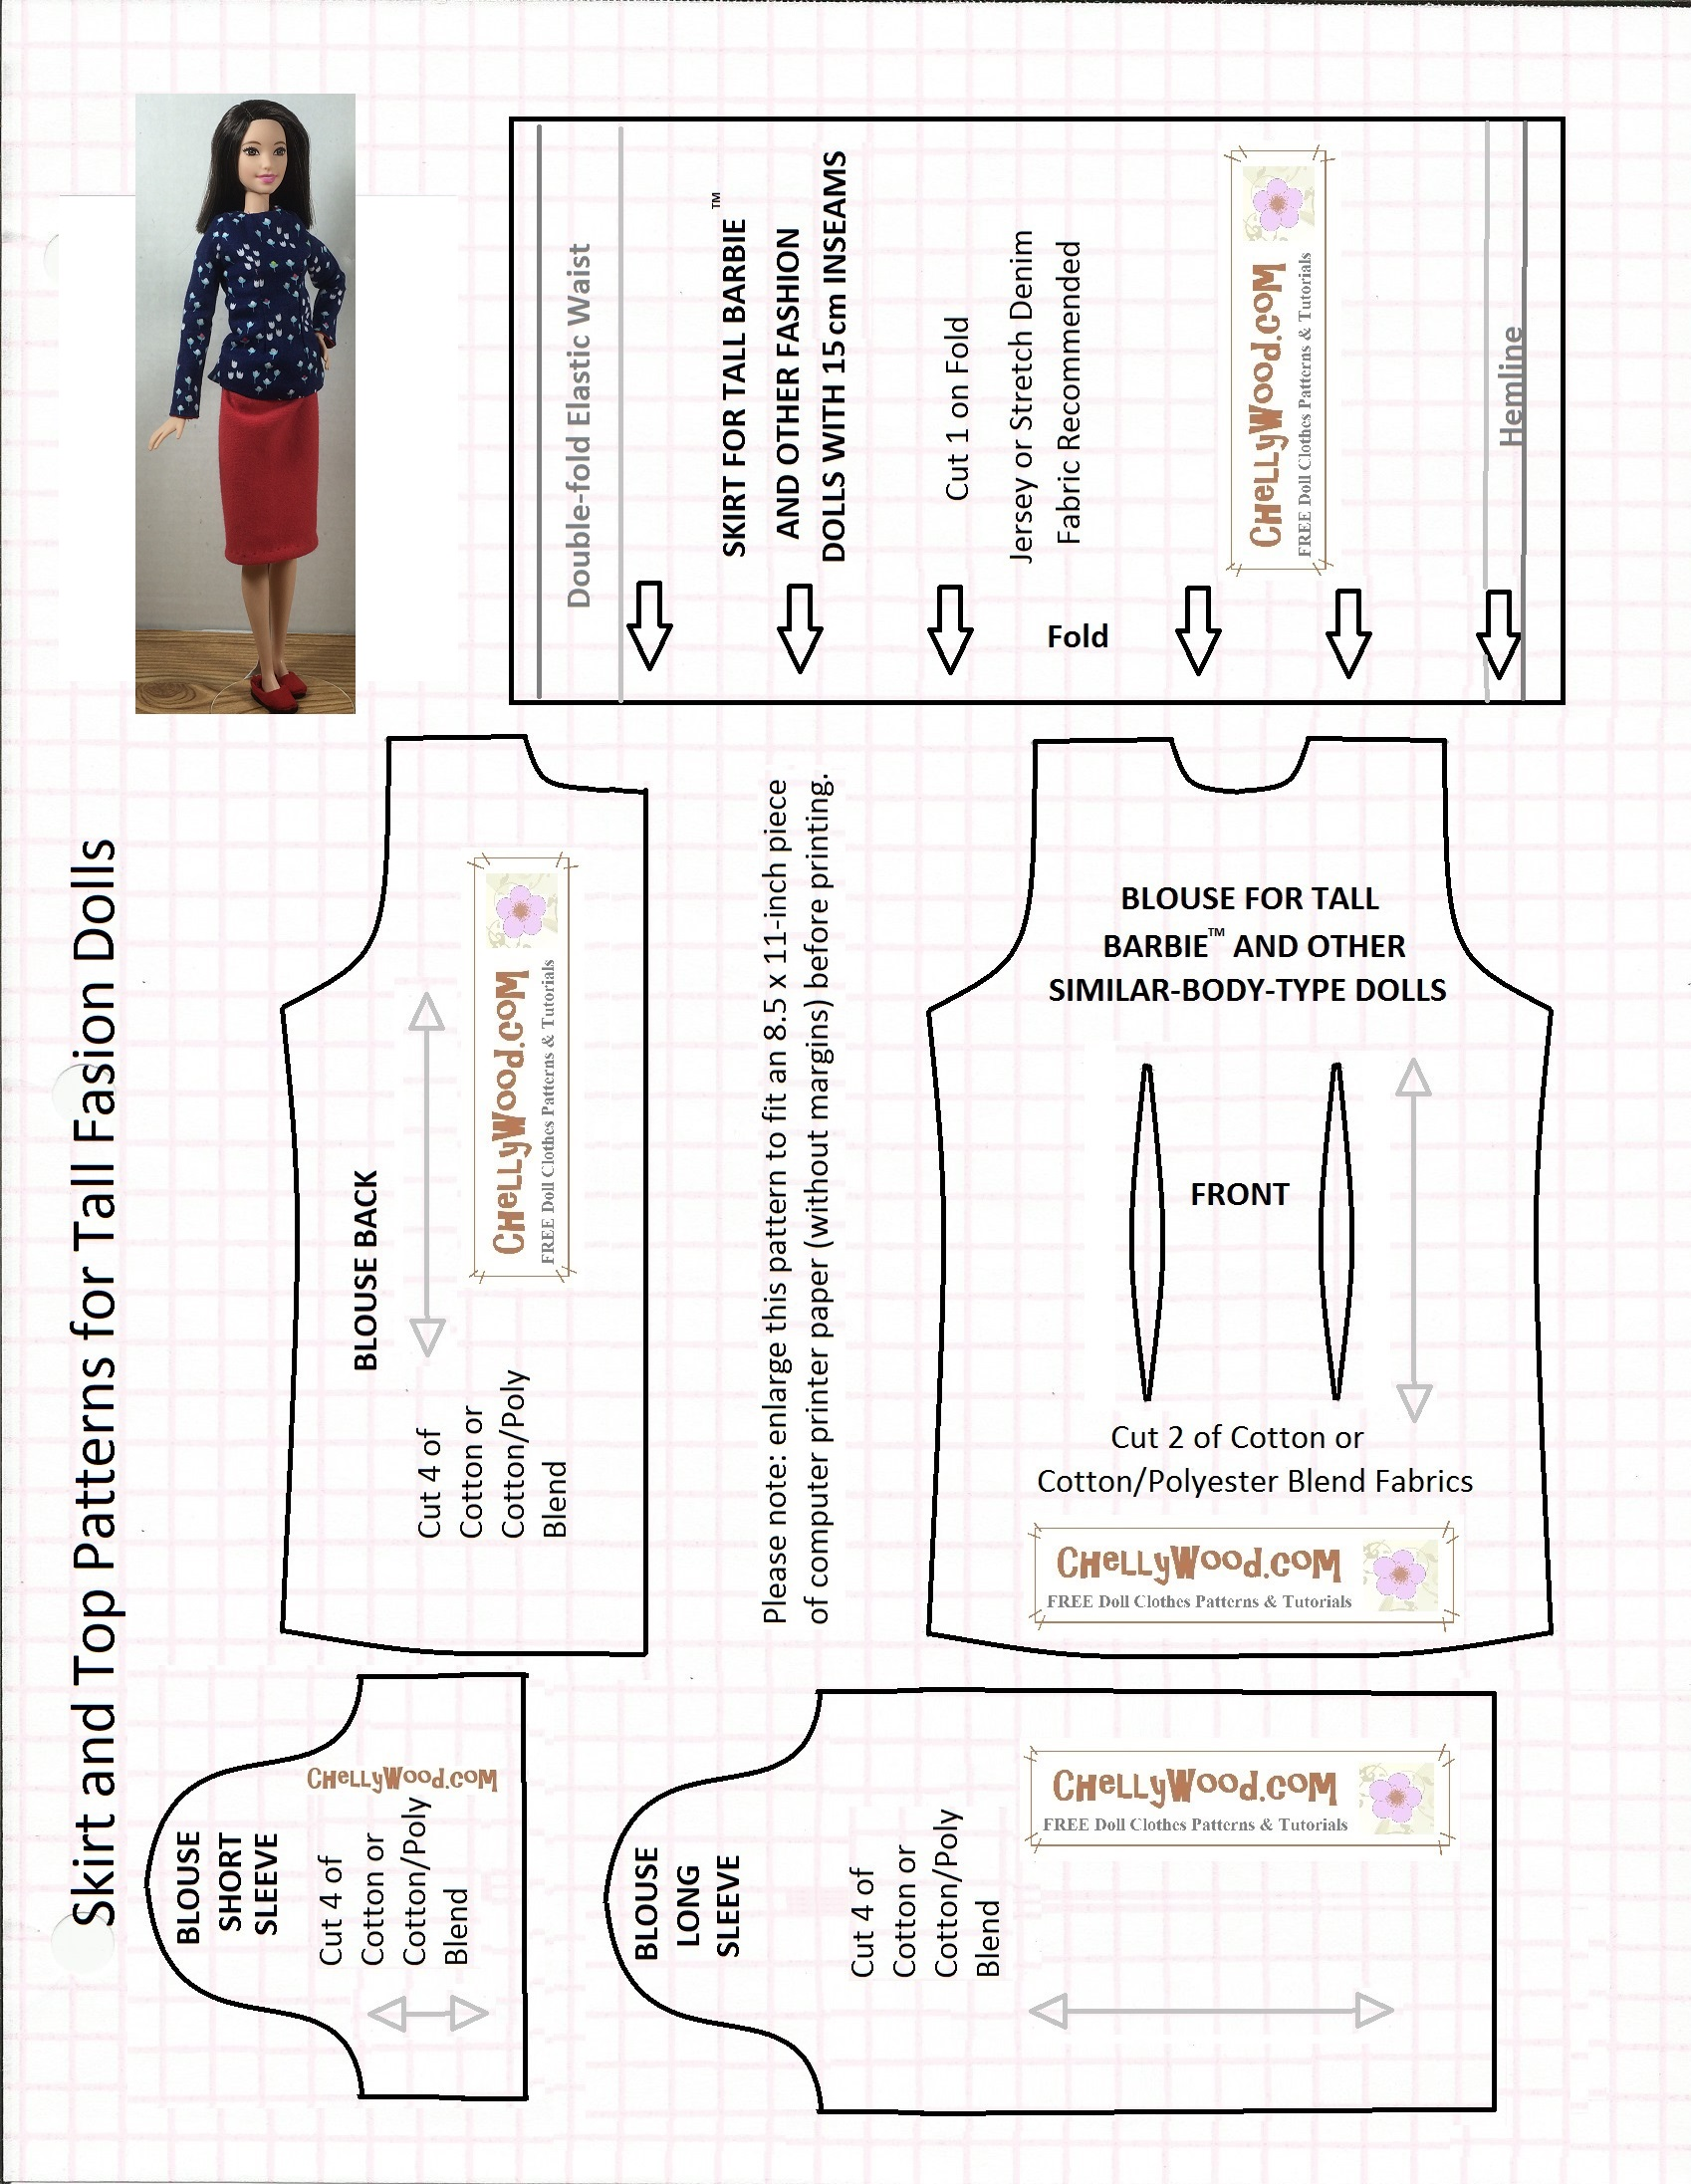 It's just a picture of Nerdy Printable Barbie Clothes Patterns